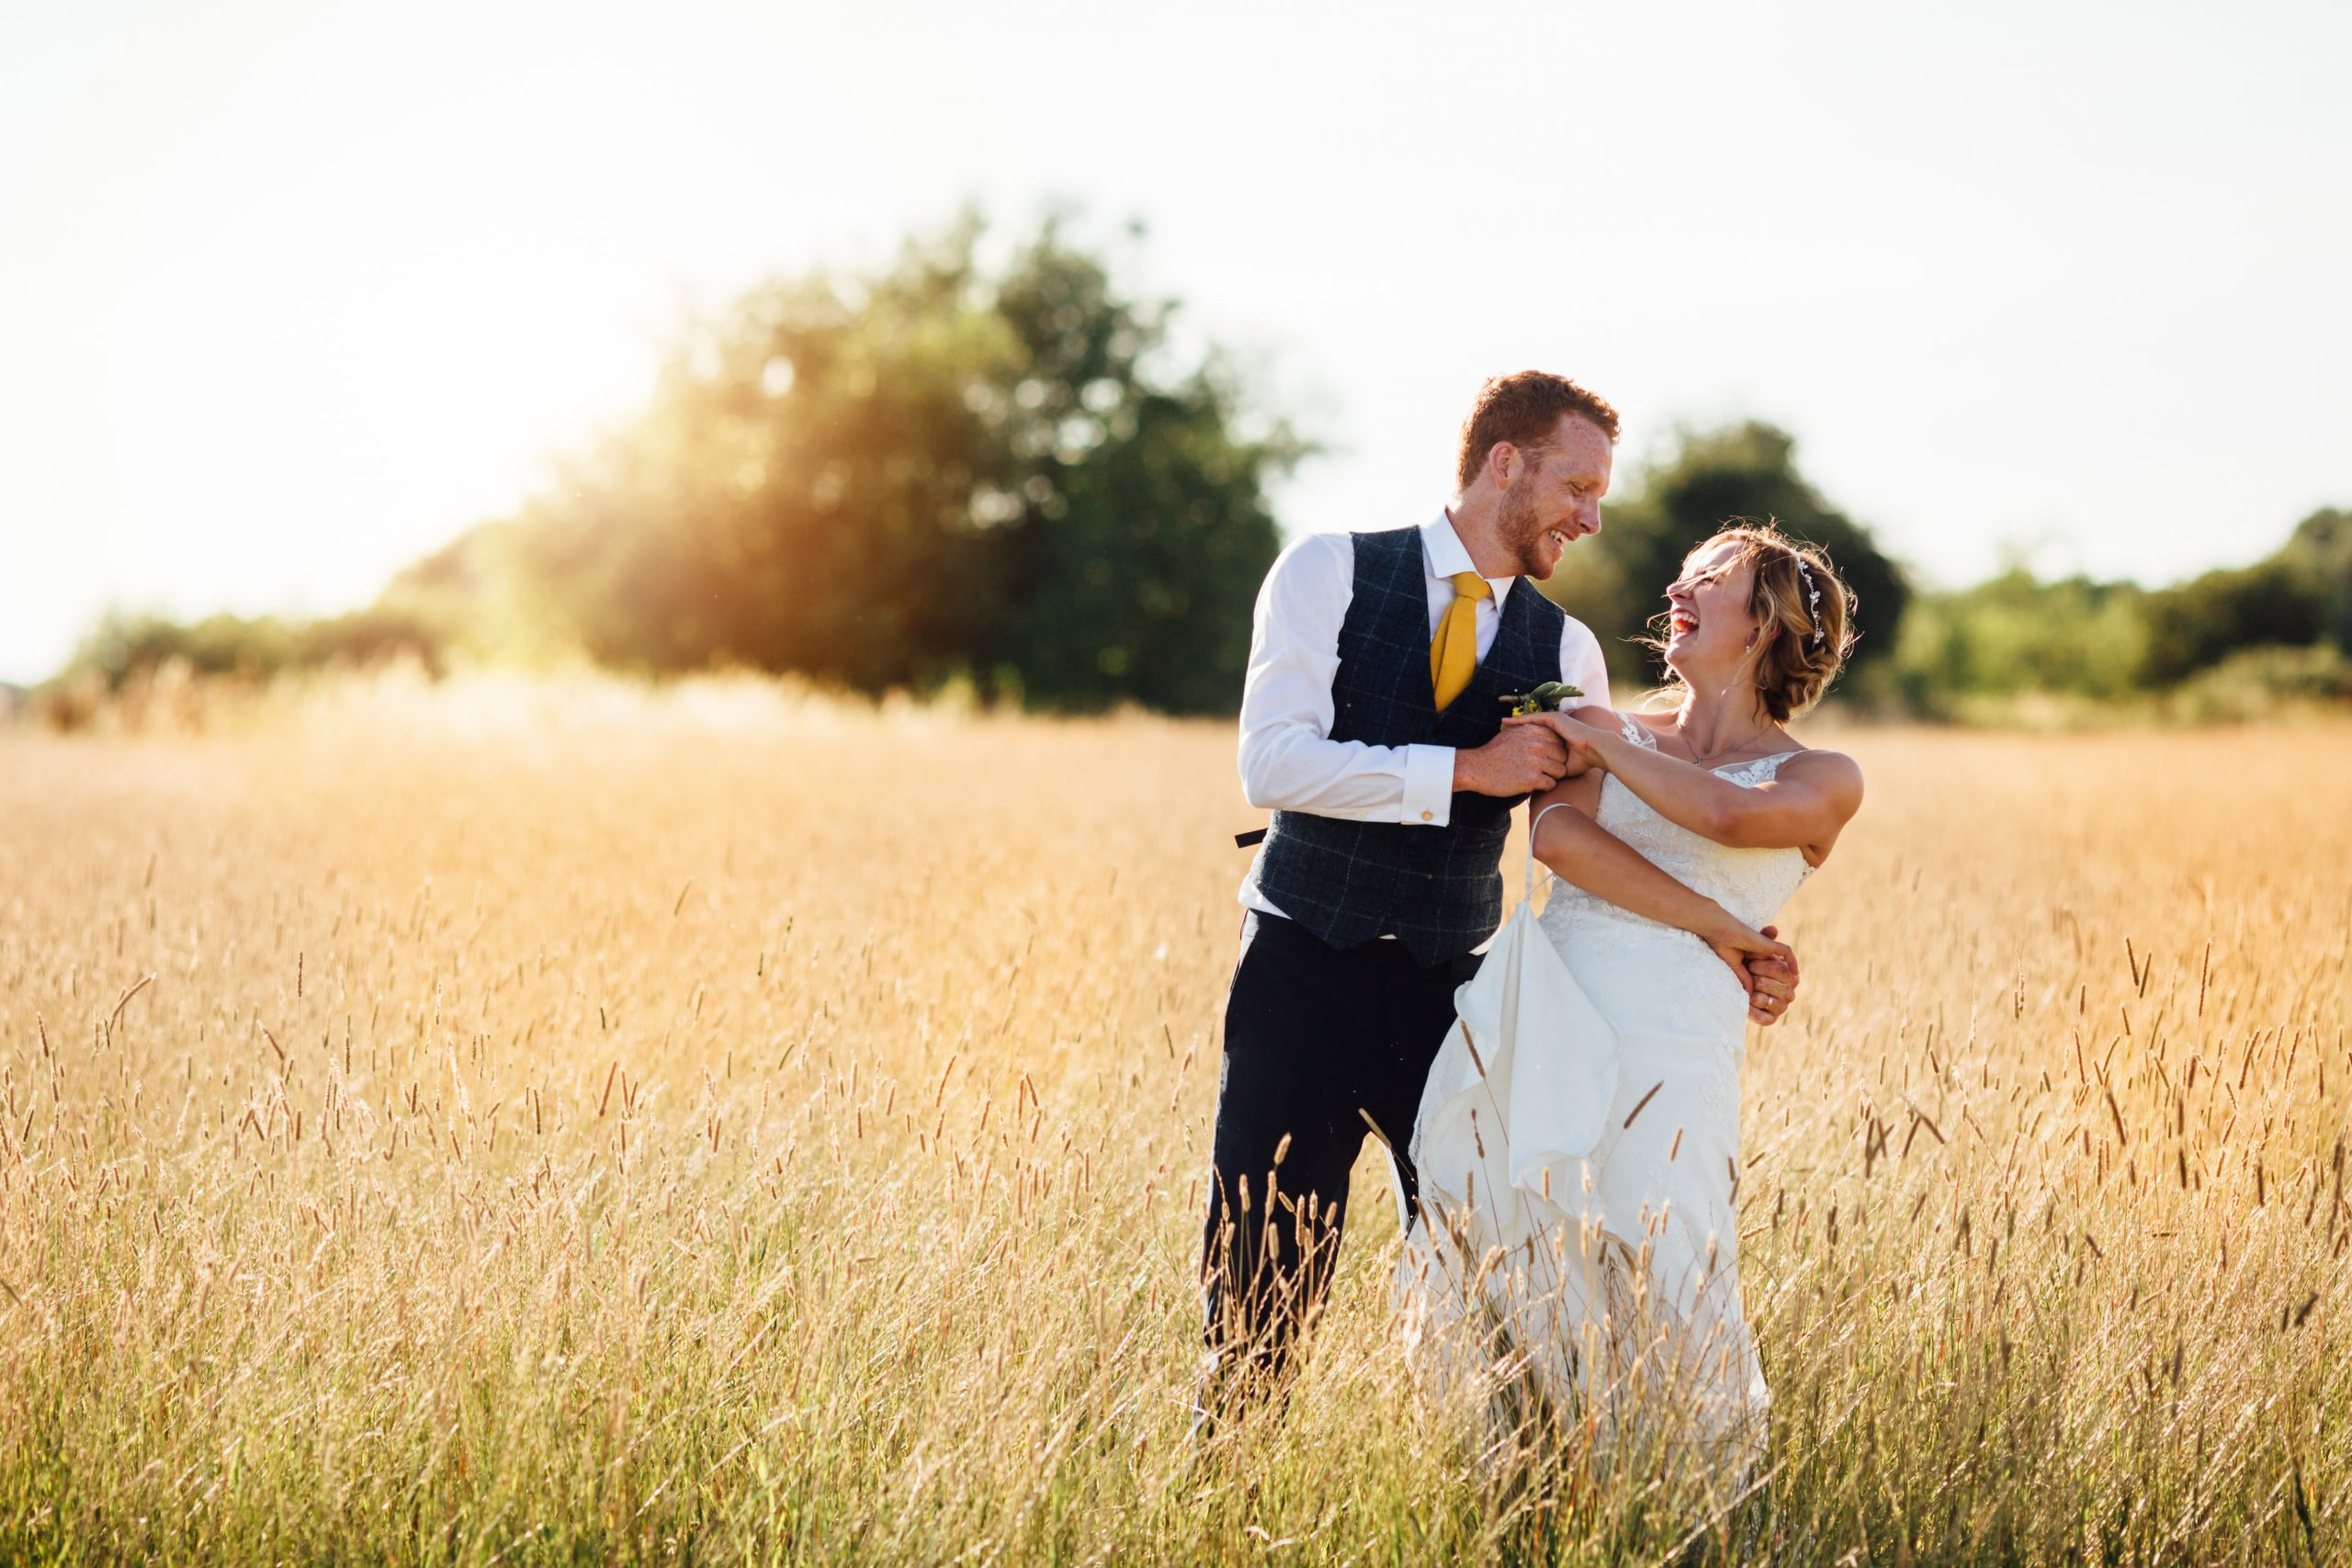 Sunflower filled outdoor wedding celebration at Cuttle Brook. Making the most of the surrounding farmers fields